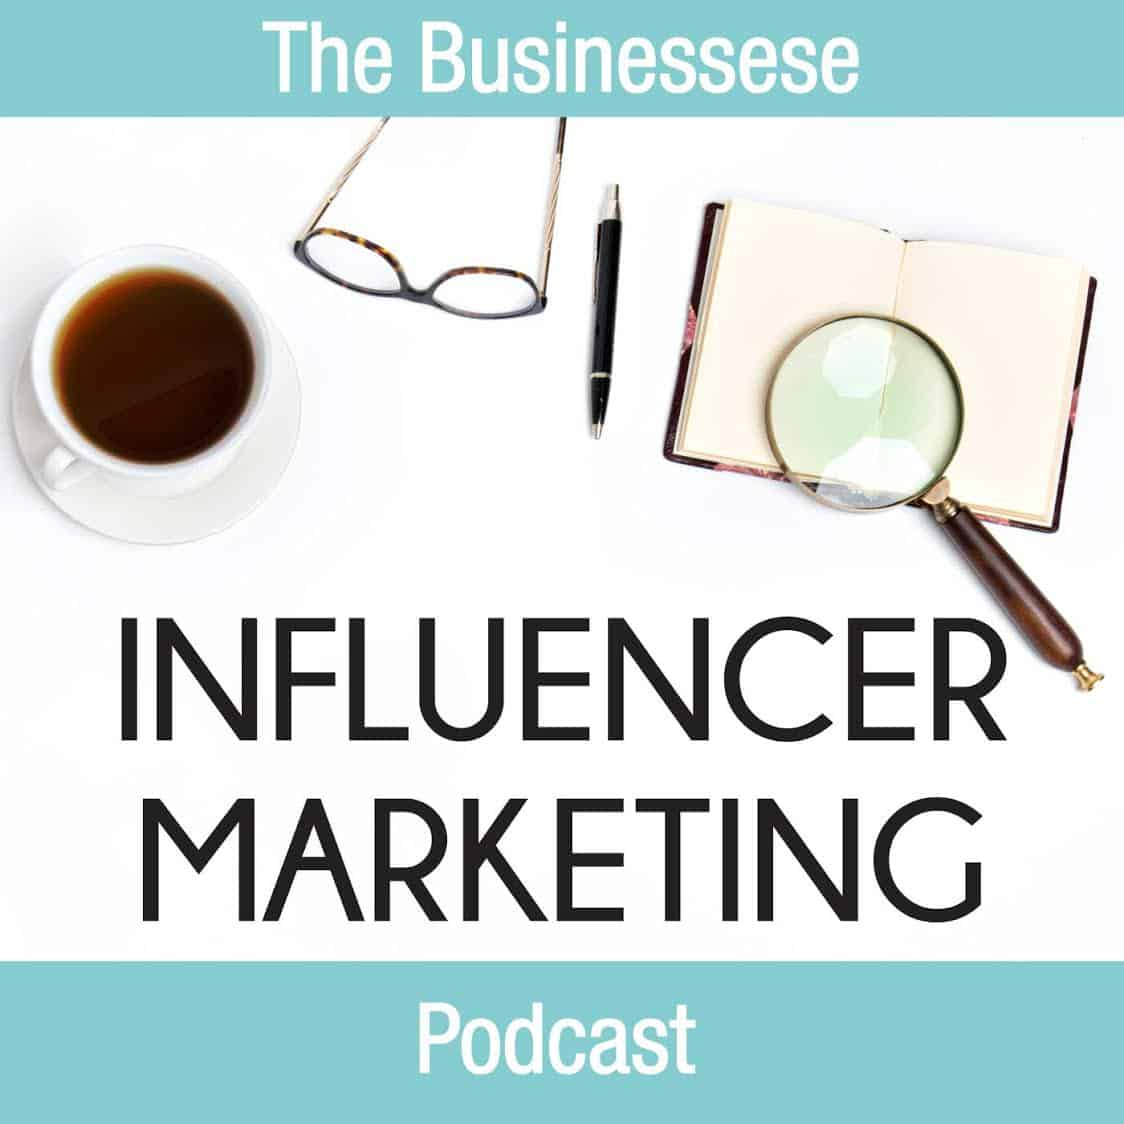 The Businessese Podcast - Influencer Marketing